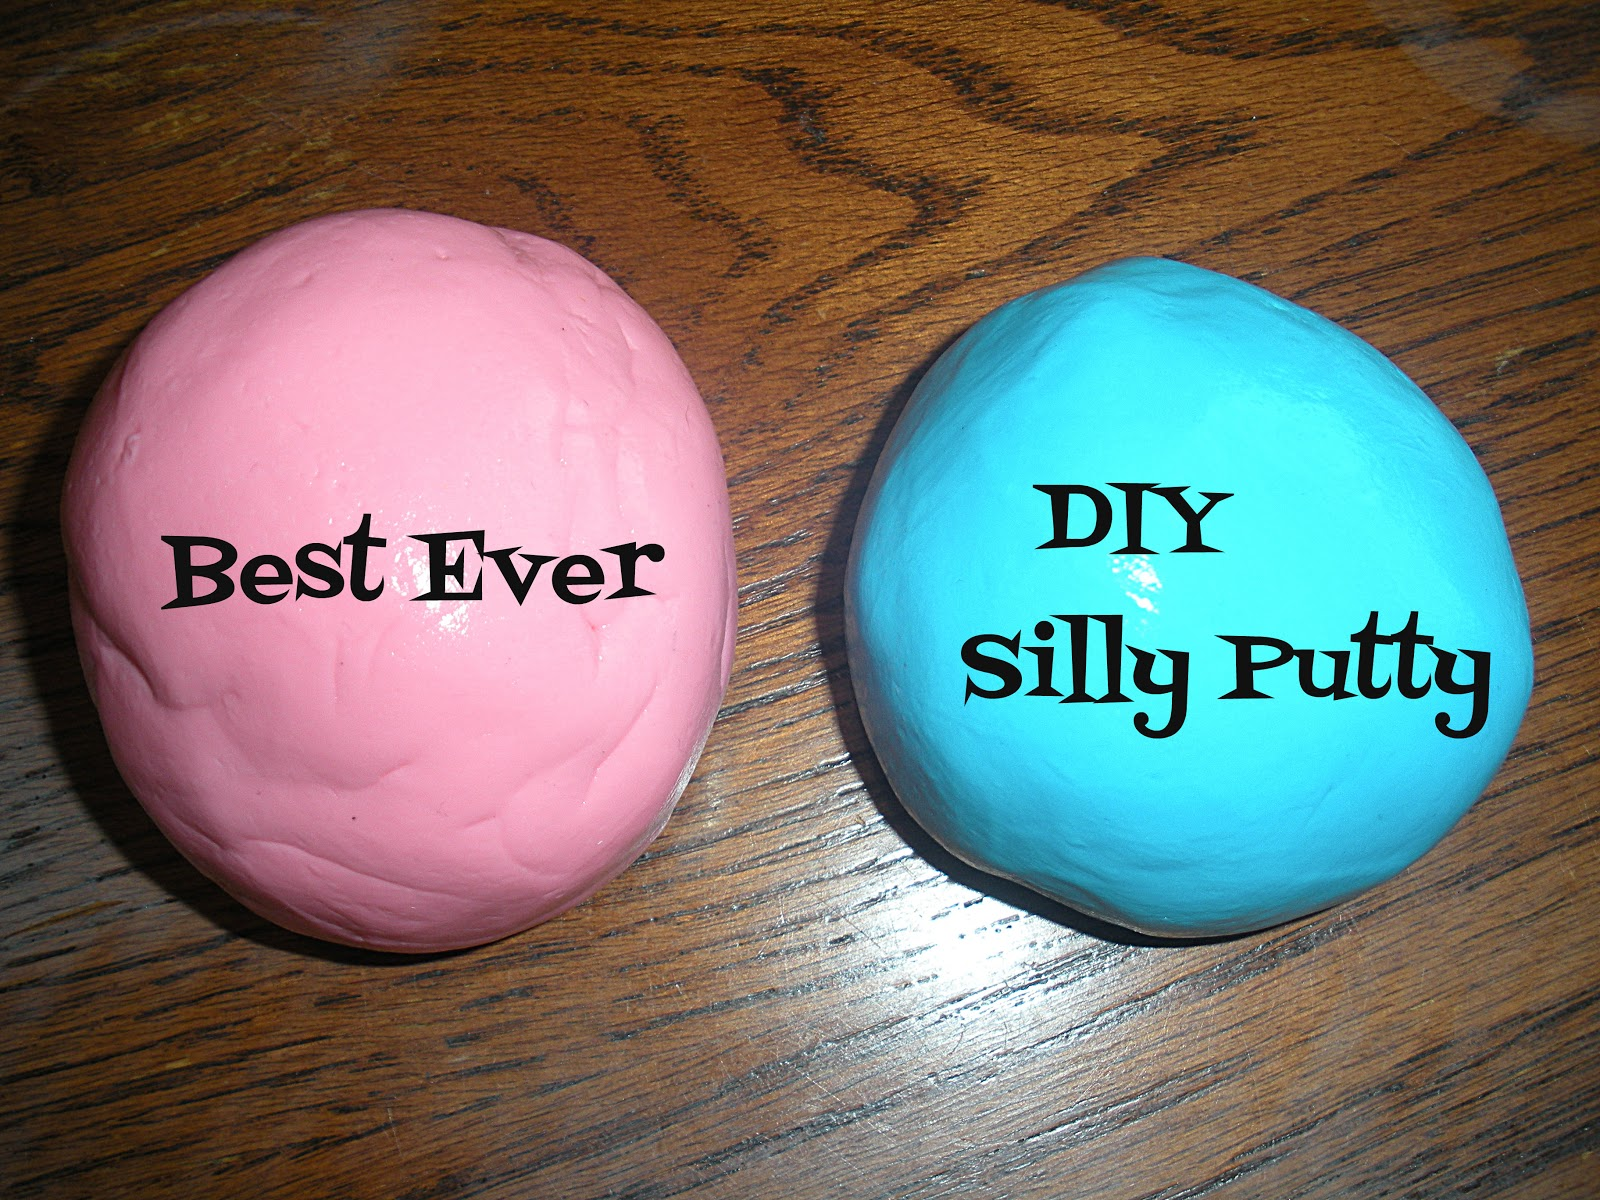 Paper Tape Pins Even Better Diy Silly Putty